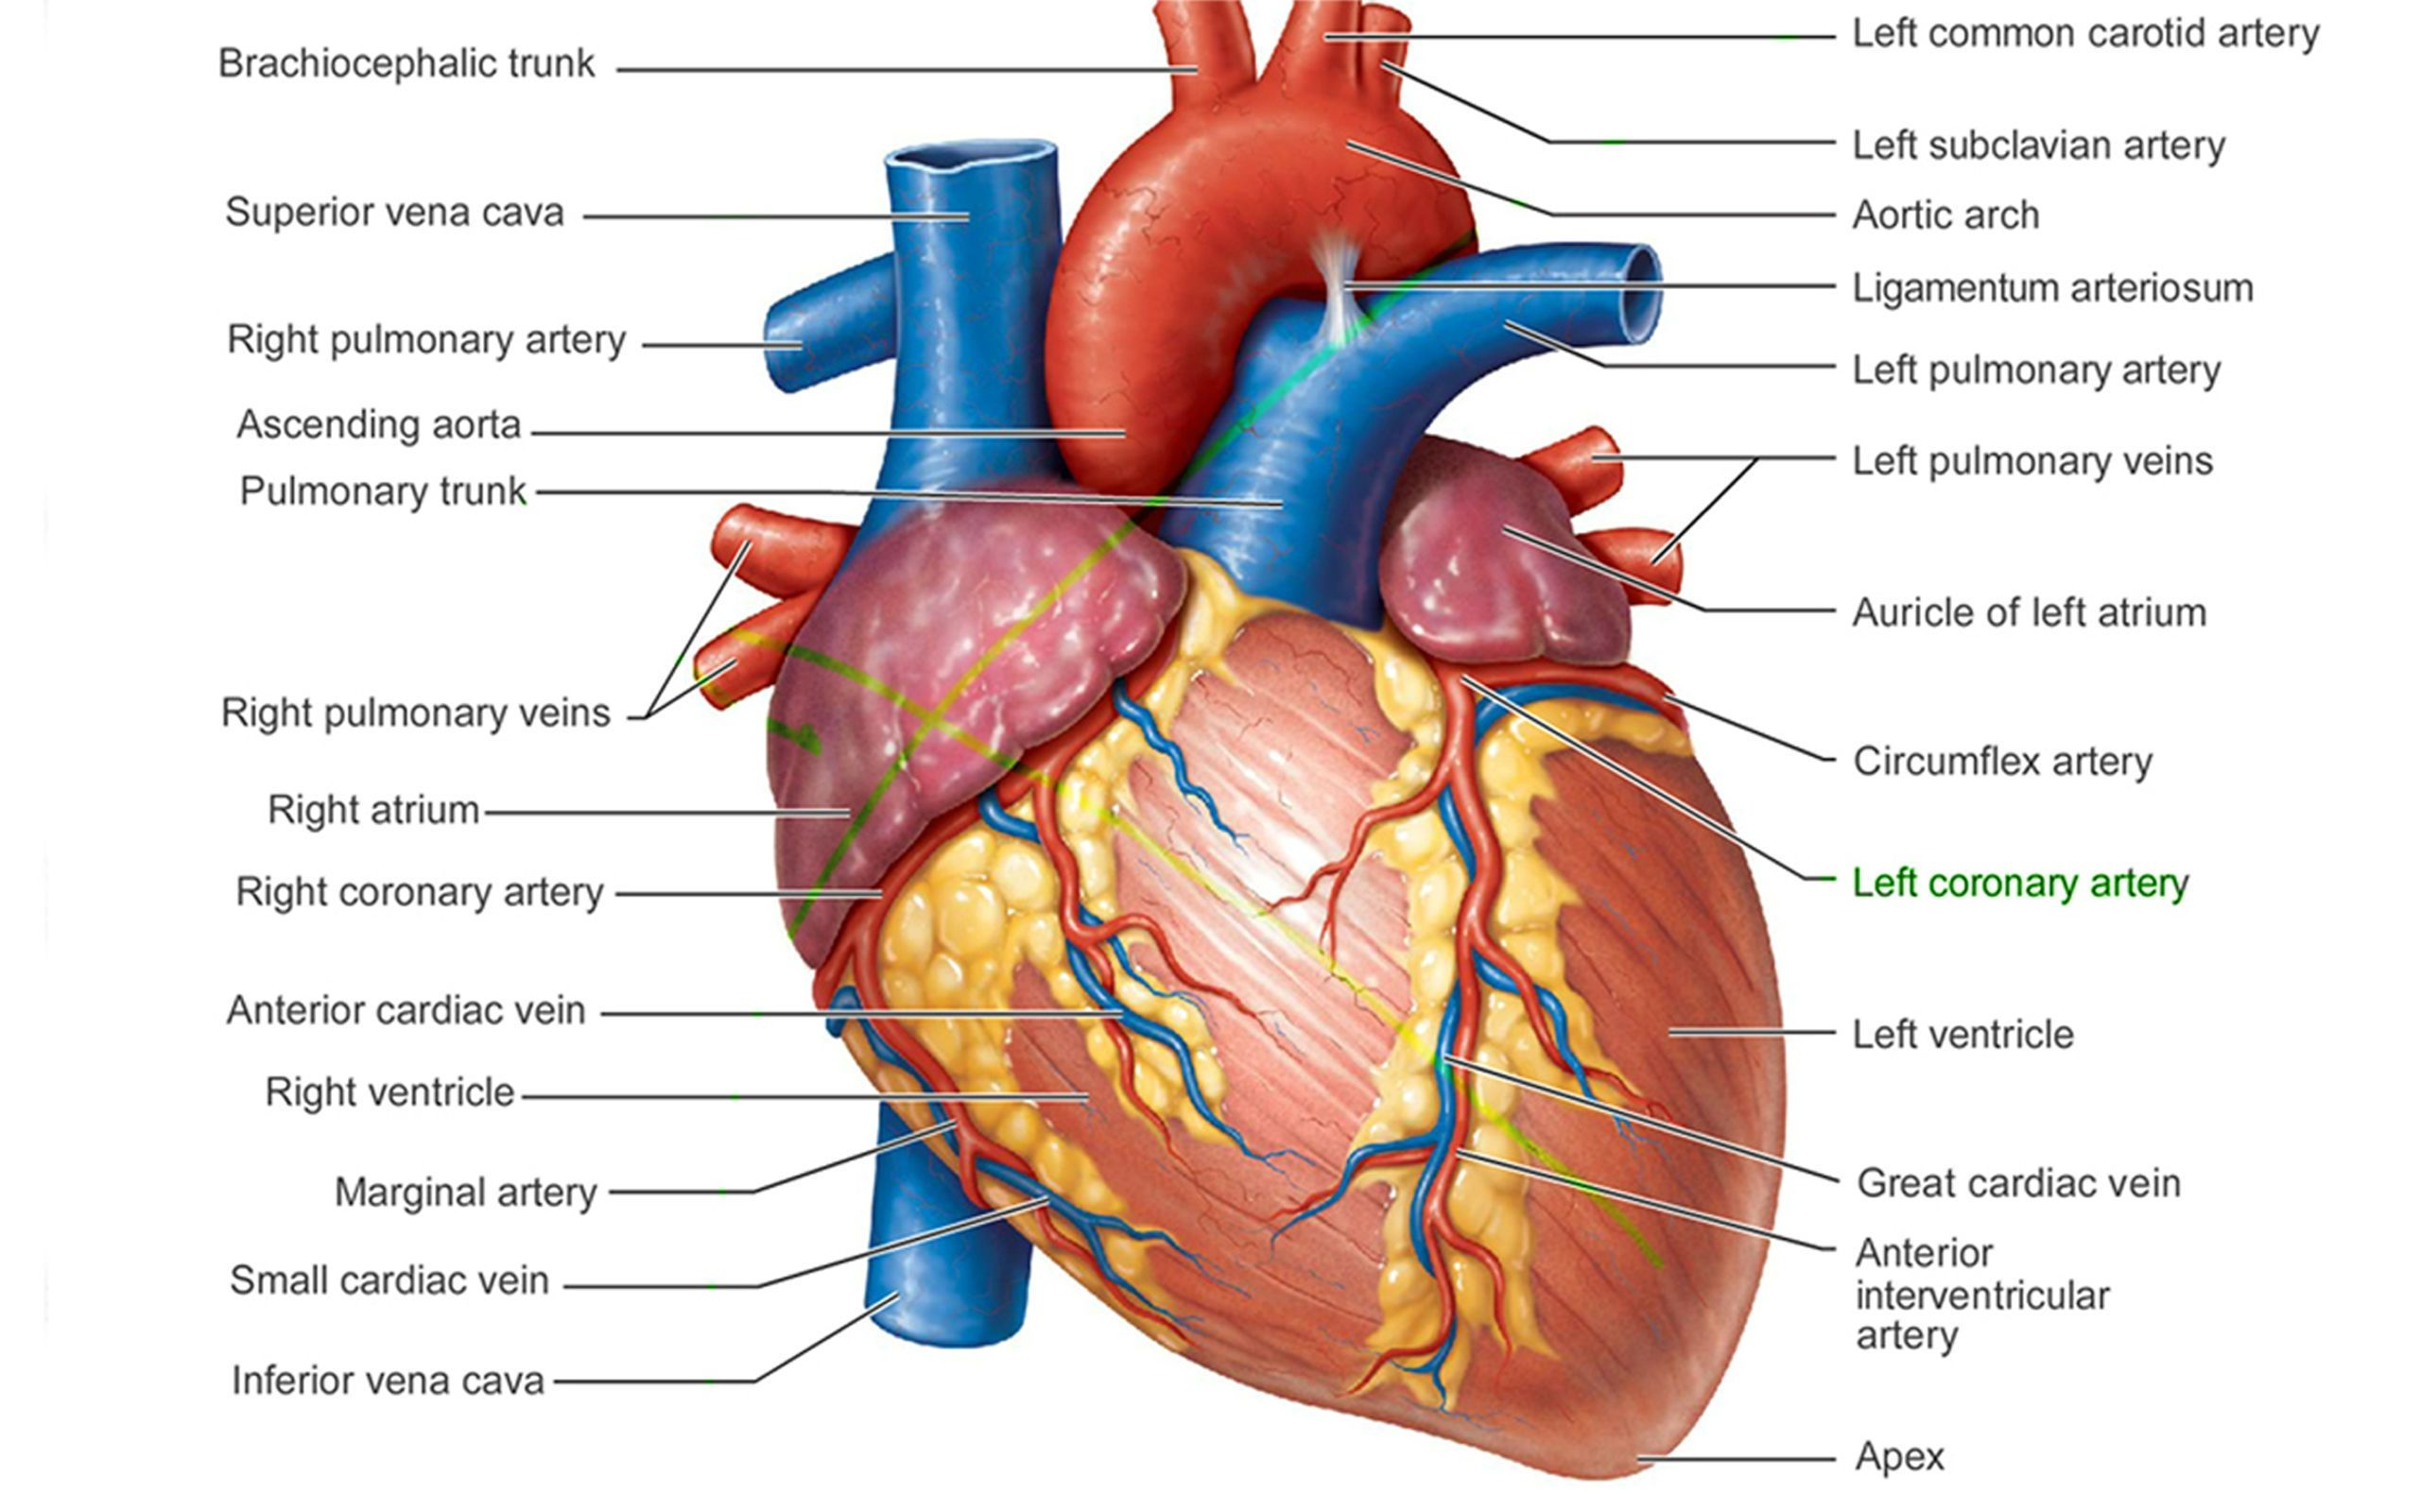 pictures of human heart anatomy anatomy of the human heart 4k ultra hd wallpaper [ 2560 x 1600 Pixel ]